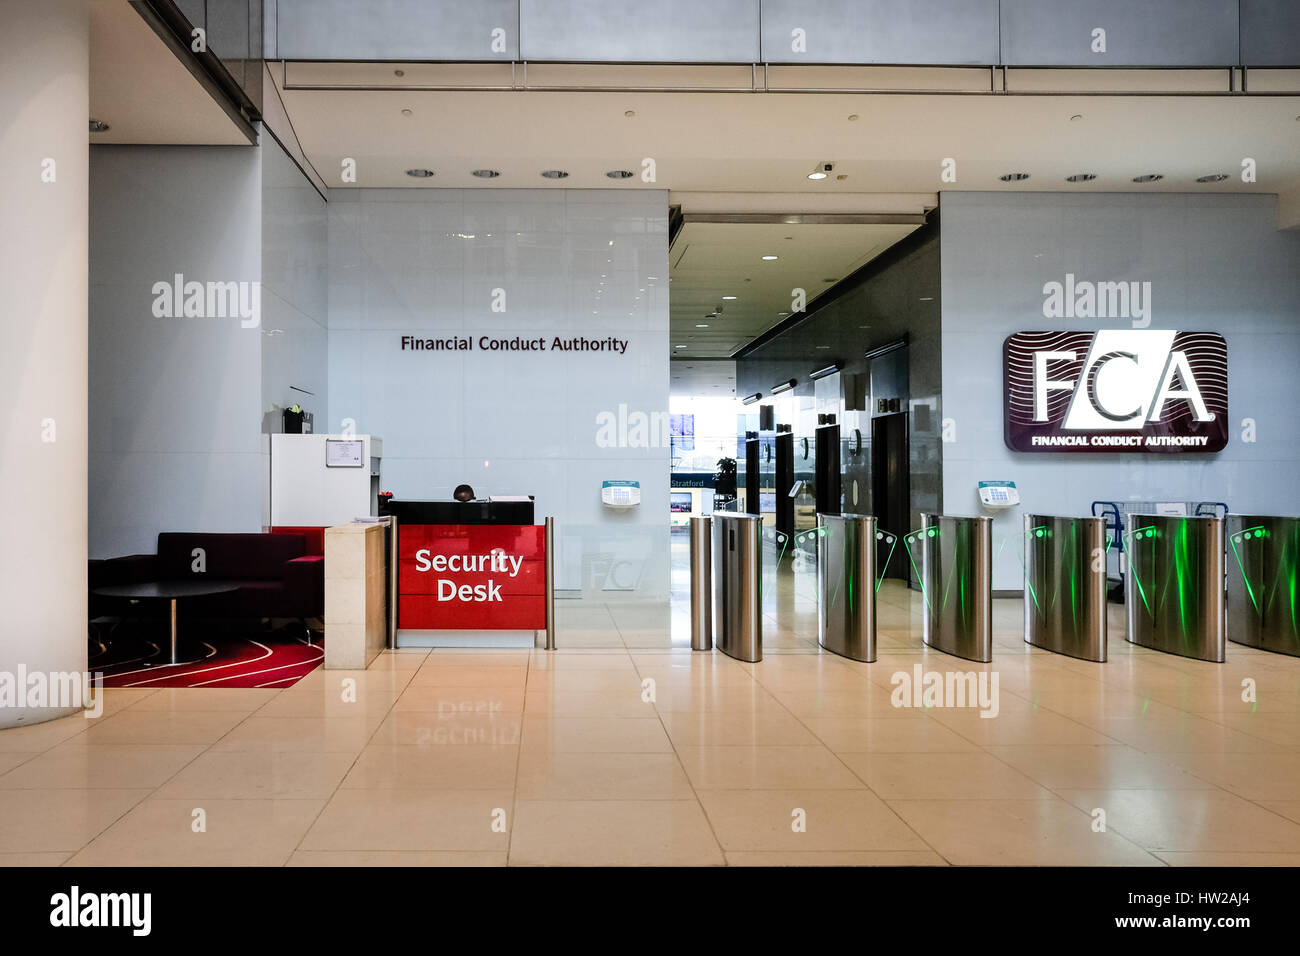 Entrance lobby of the Financial Conduct Authority (FCA) building at Canary Wharf, one of London's two financial Stock Photo